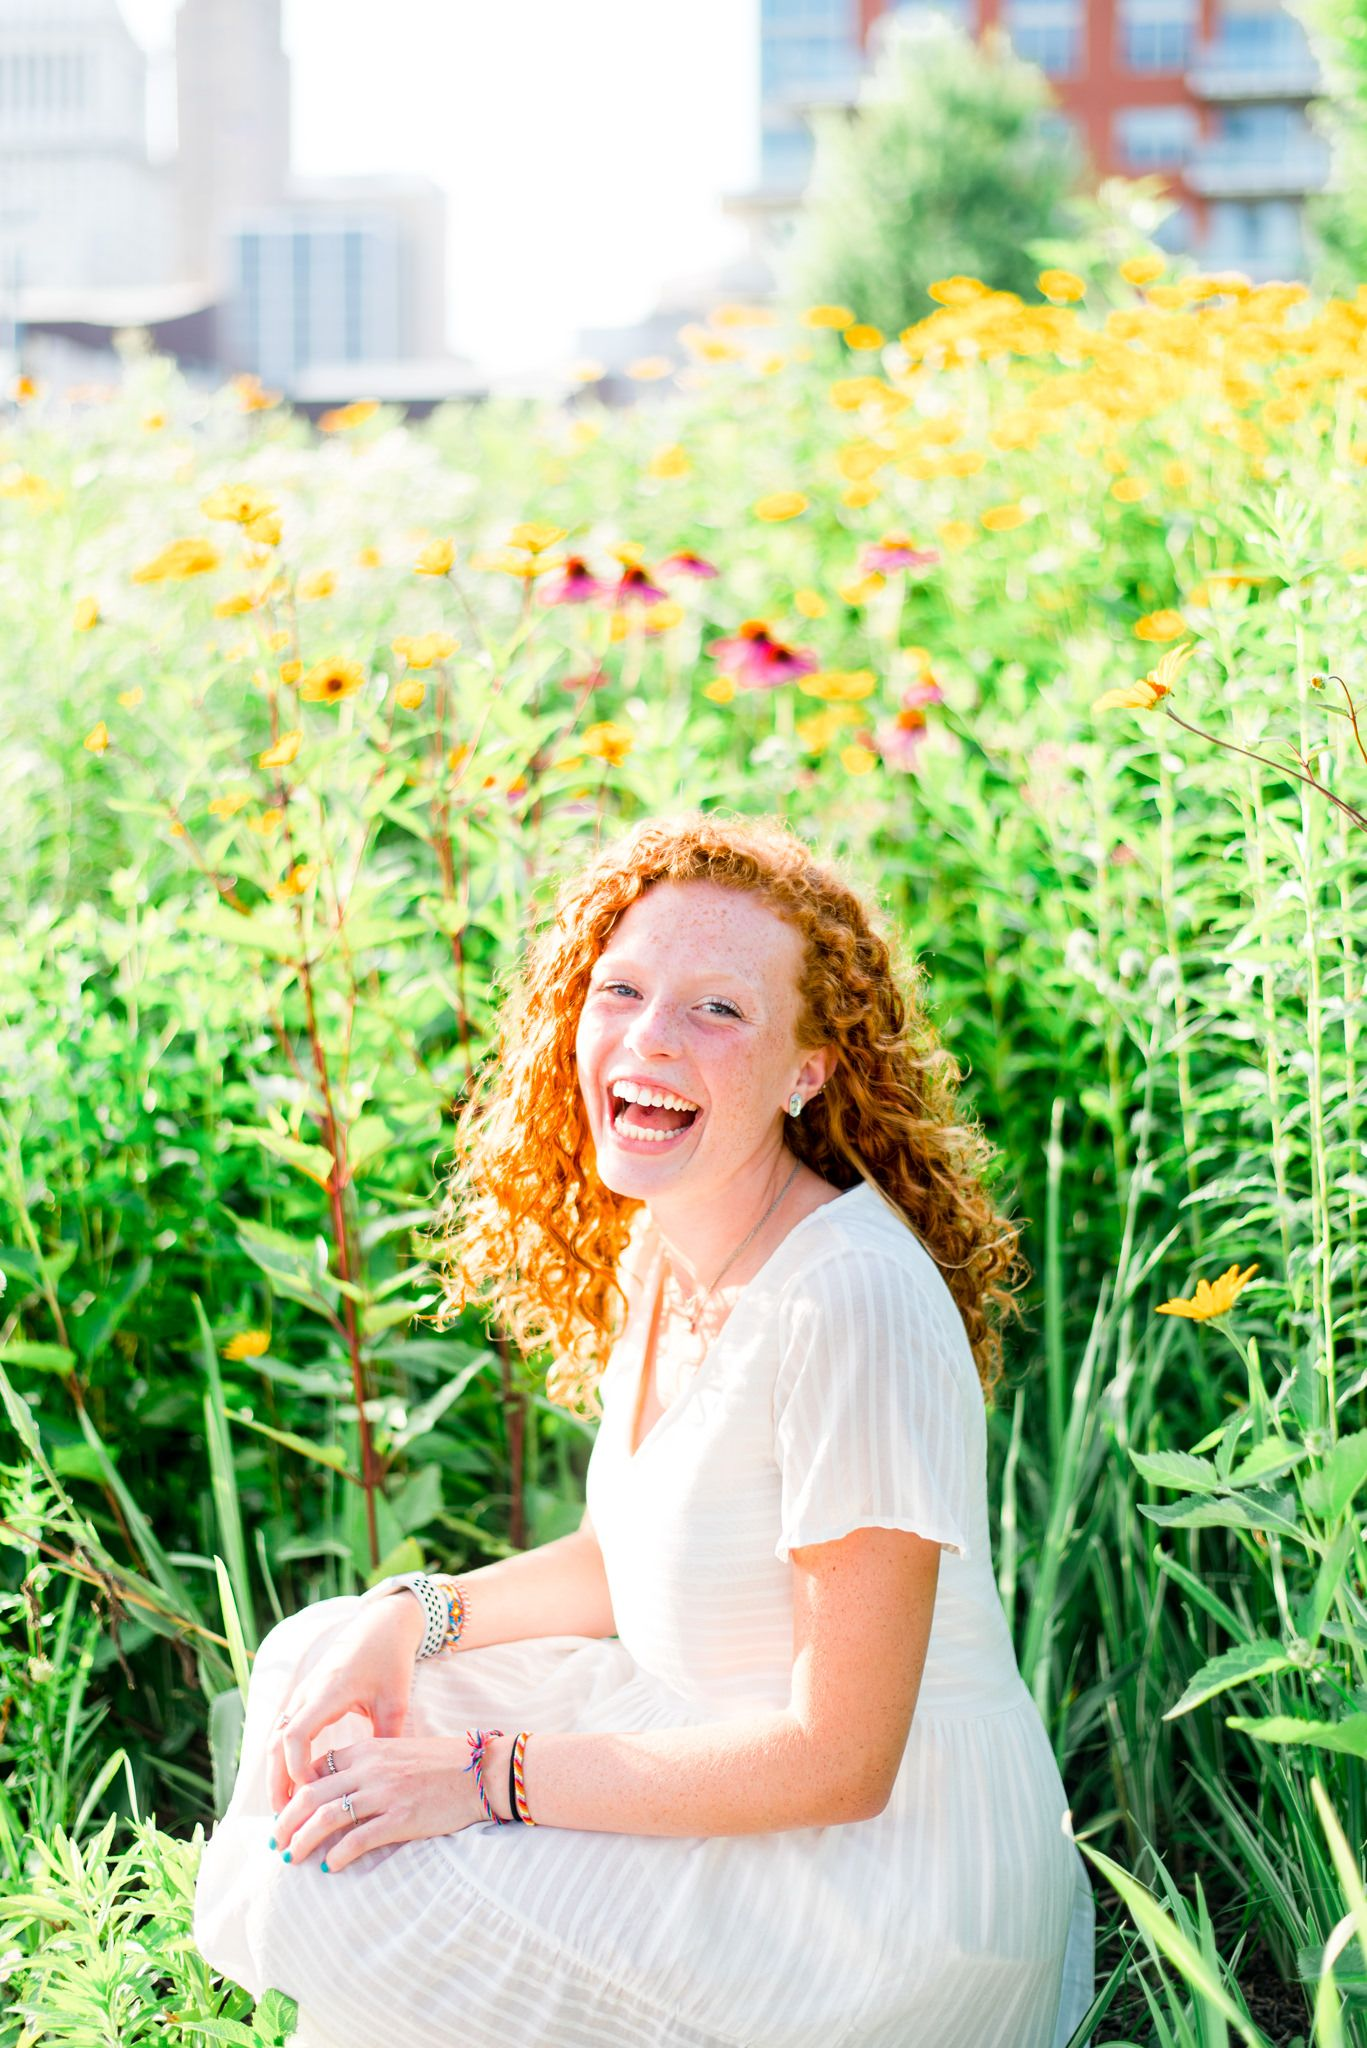 young woman with curly red hair laughing widely in the yellow and pink flowers at Smale Park at sunset